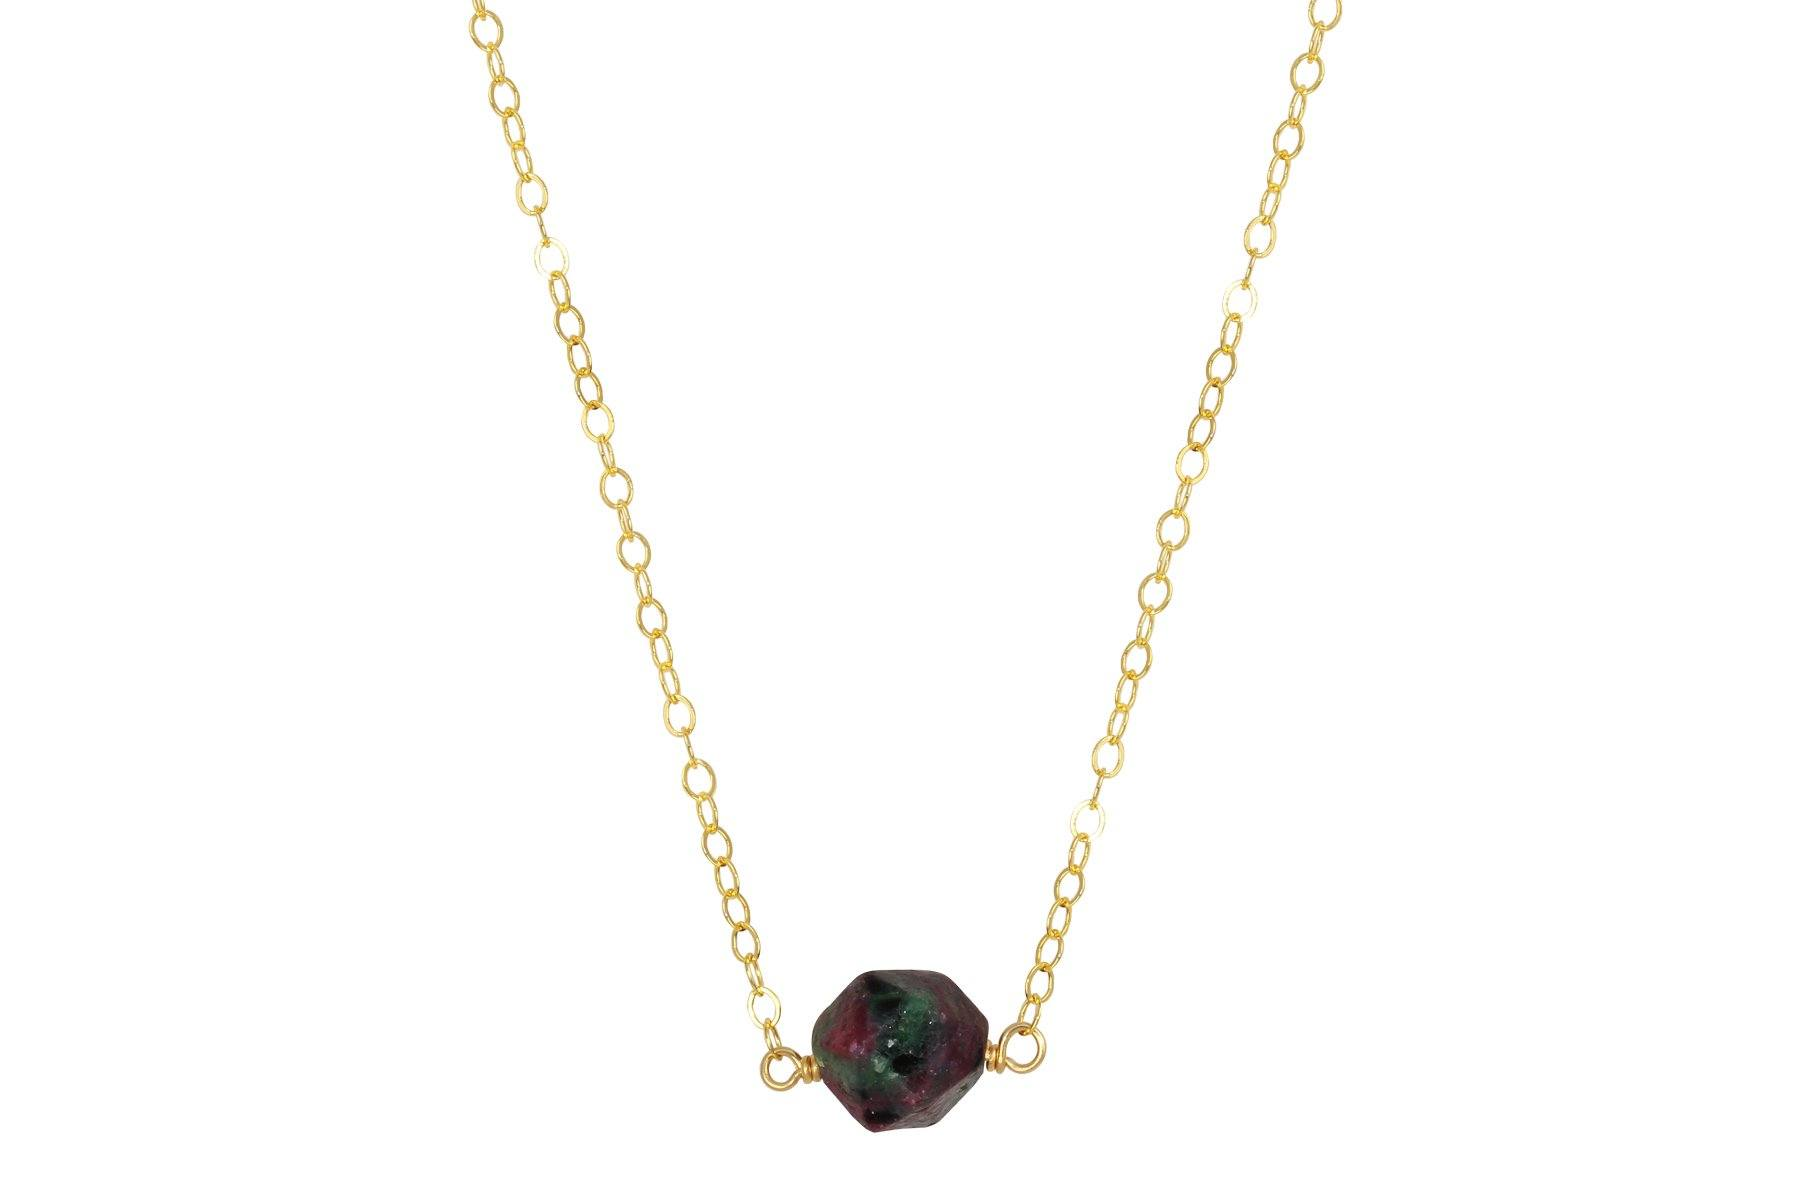 Ruby in Zoisite faceted nugget 14K yellow gold filled necklace - Amanda K Lockrow